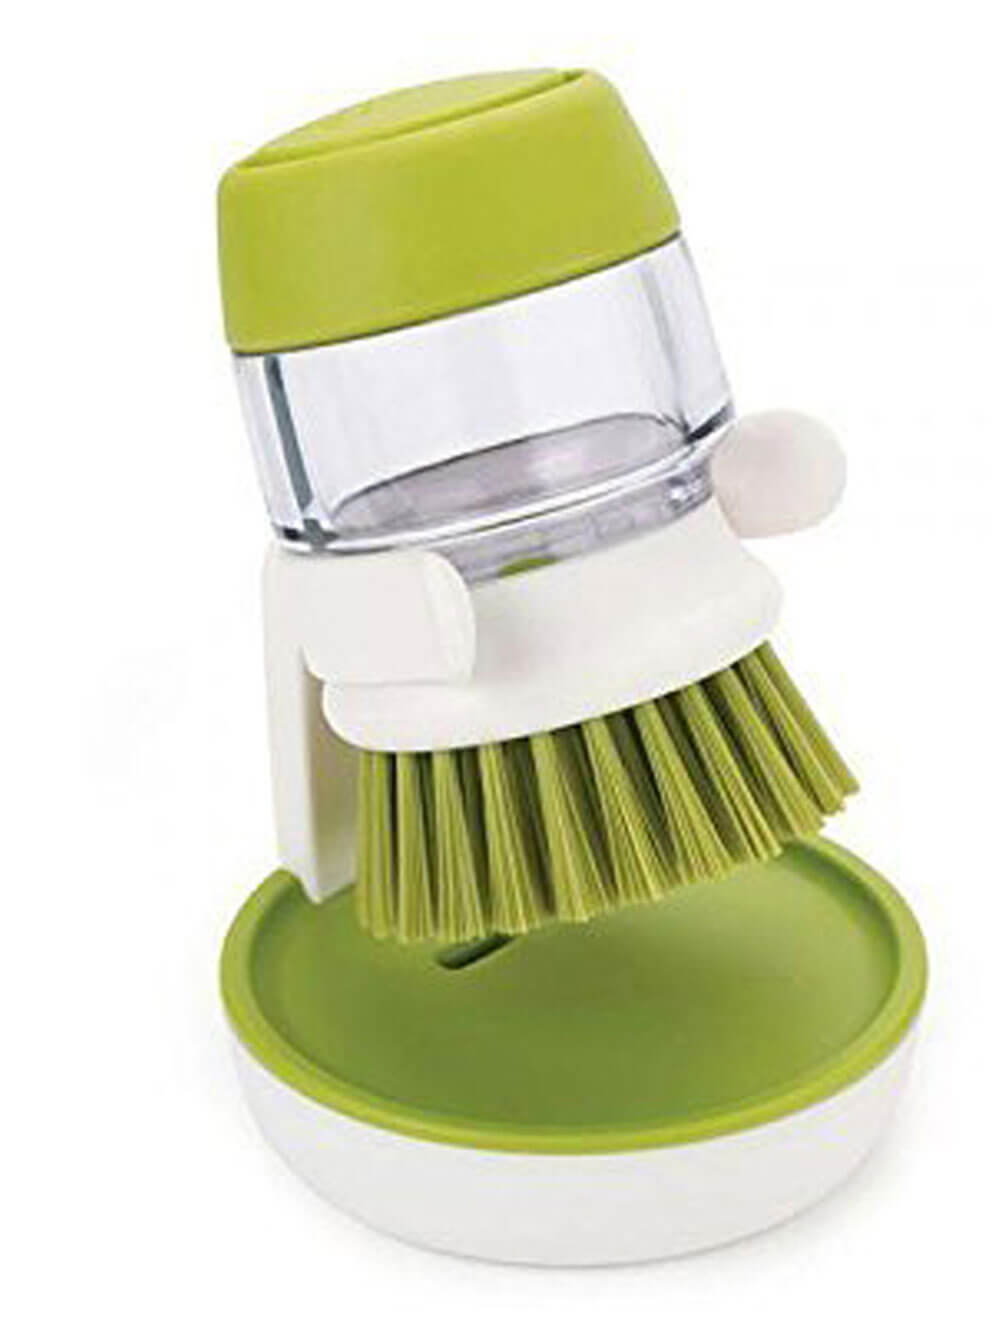 Mess Cleaning Brush with Liquid Soap Dispenser 180 ml Soap Dispenser